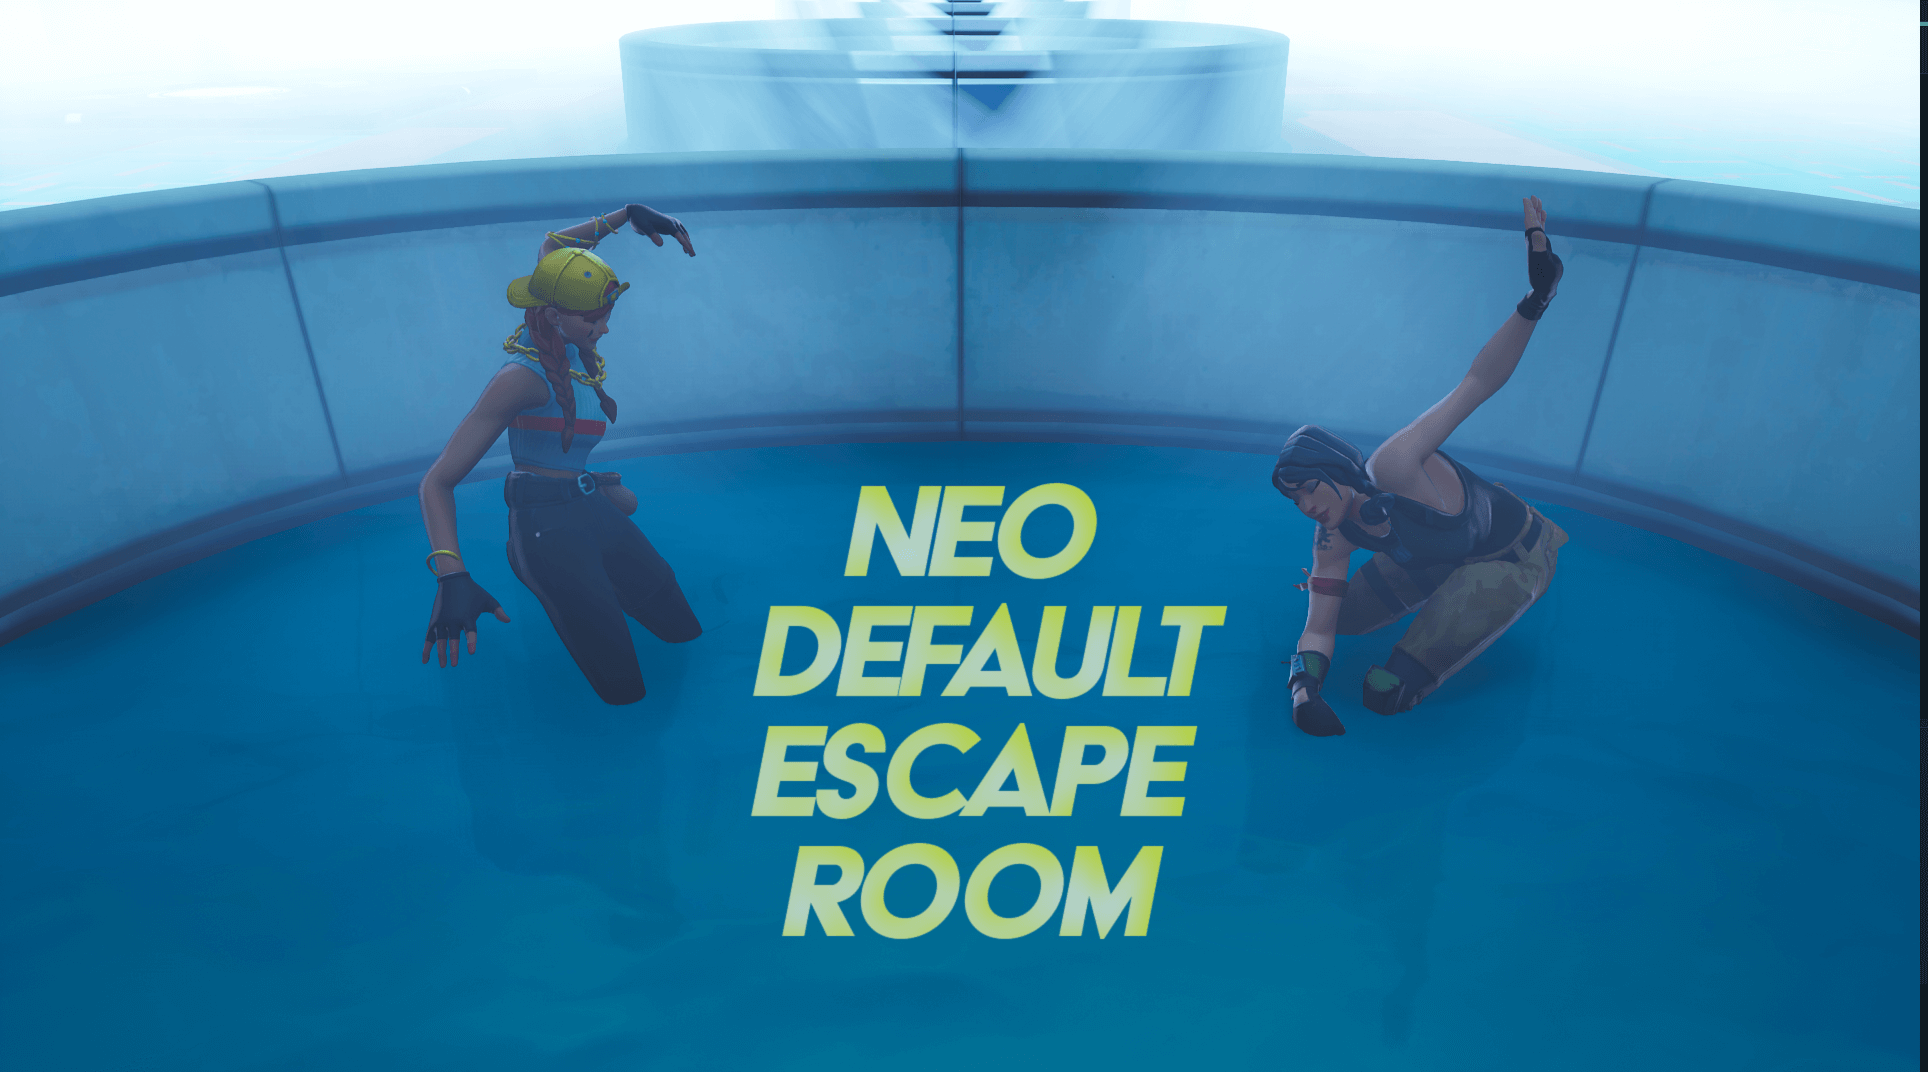 NEO DEFAULT ESCAPE ROOM